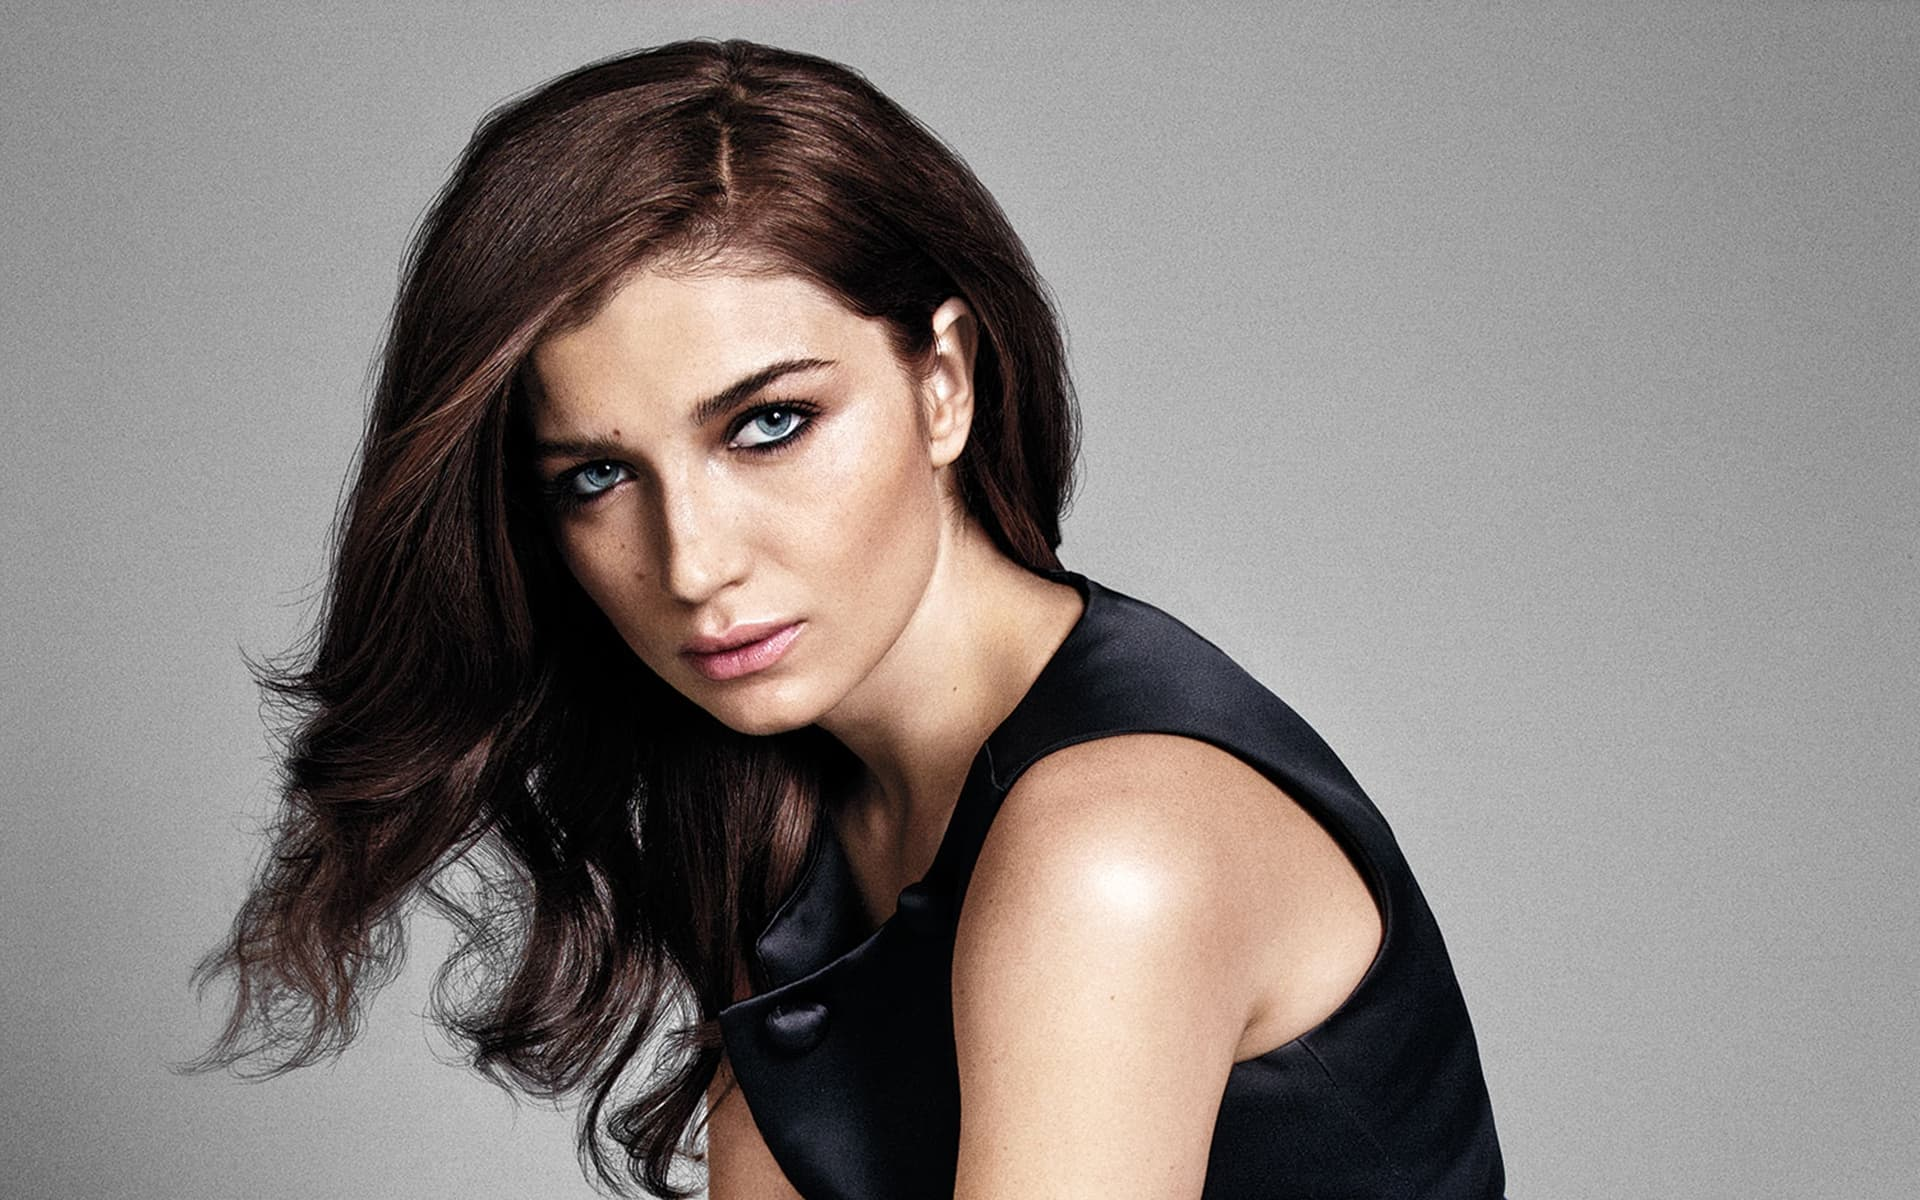 14 eve hewson wallpapers high quality resolution download